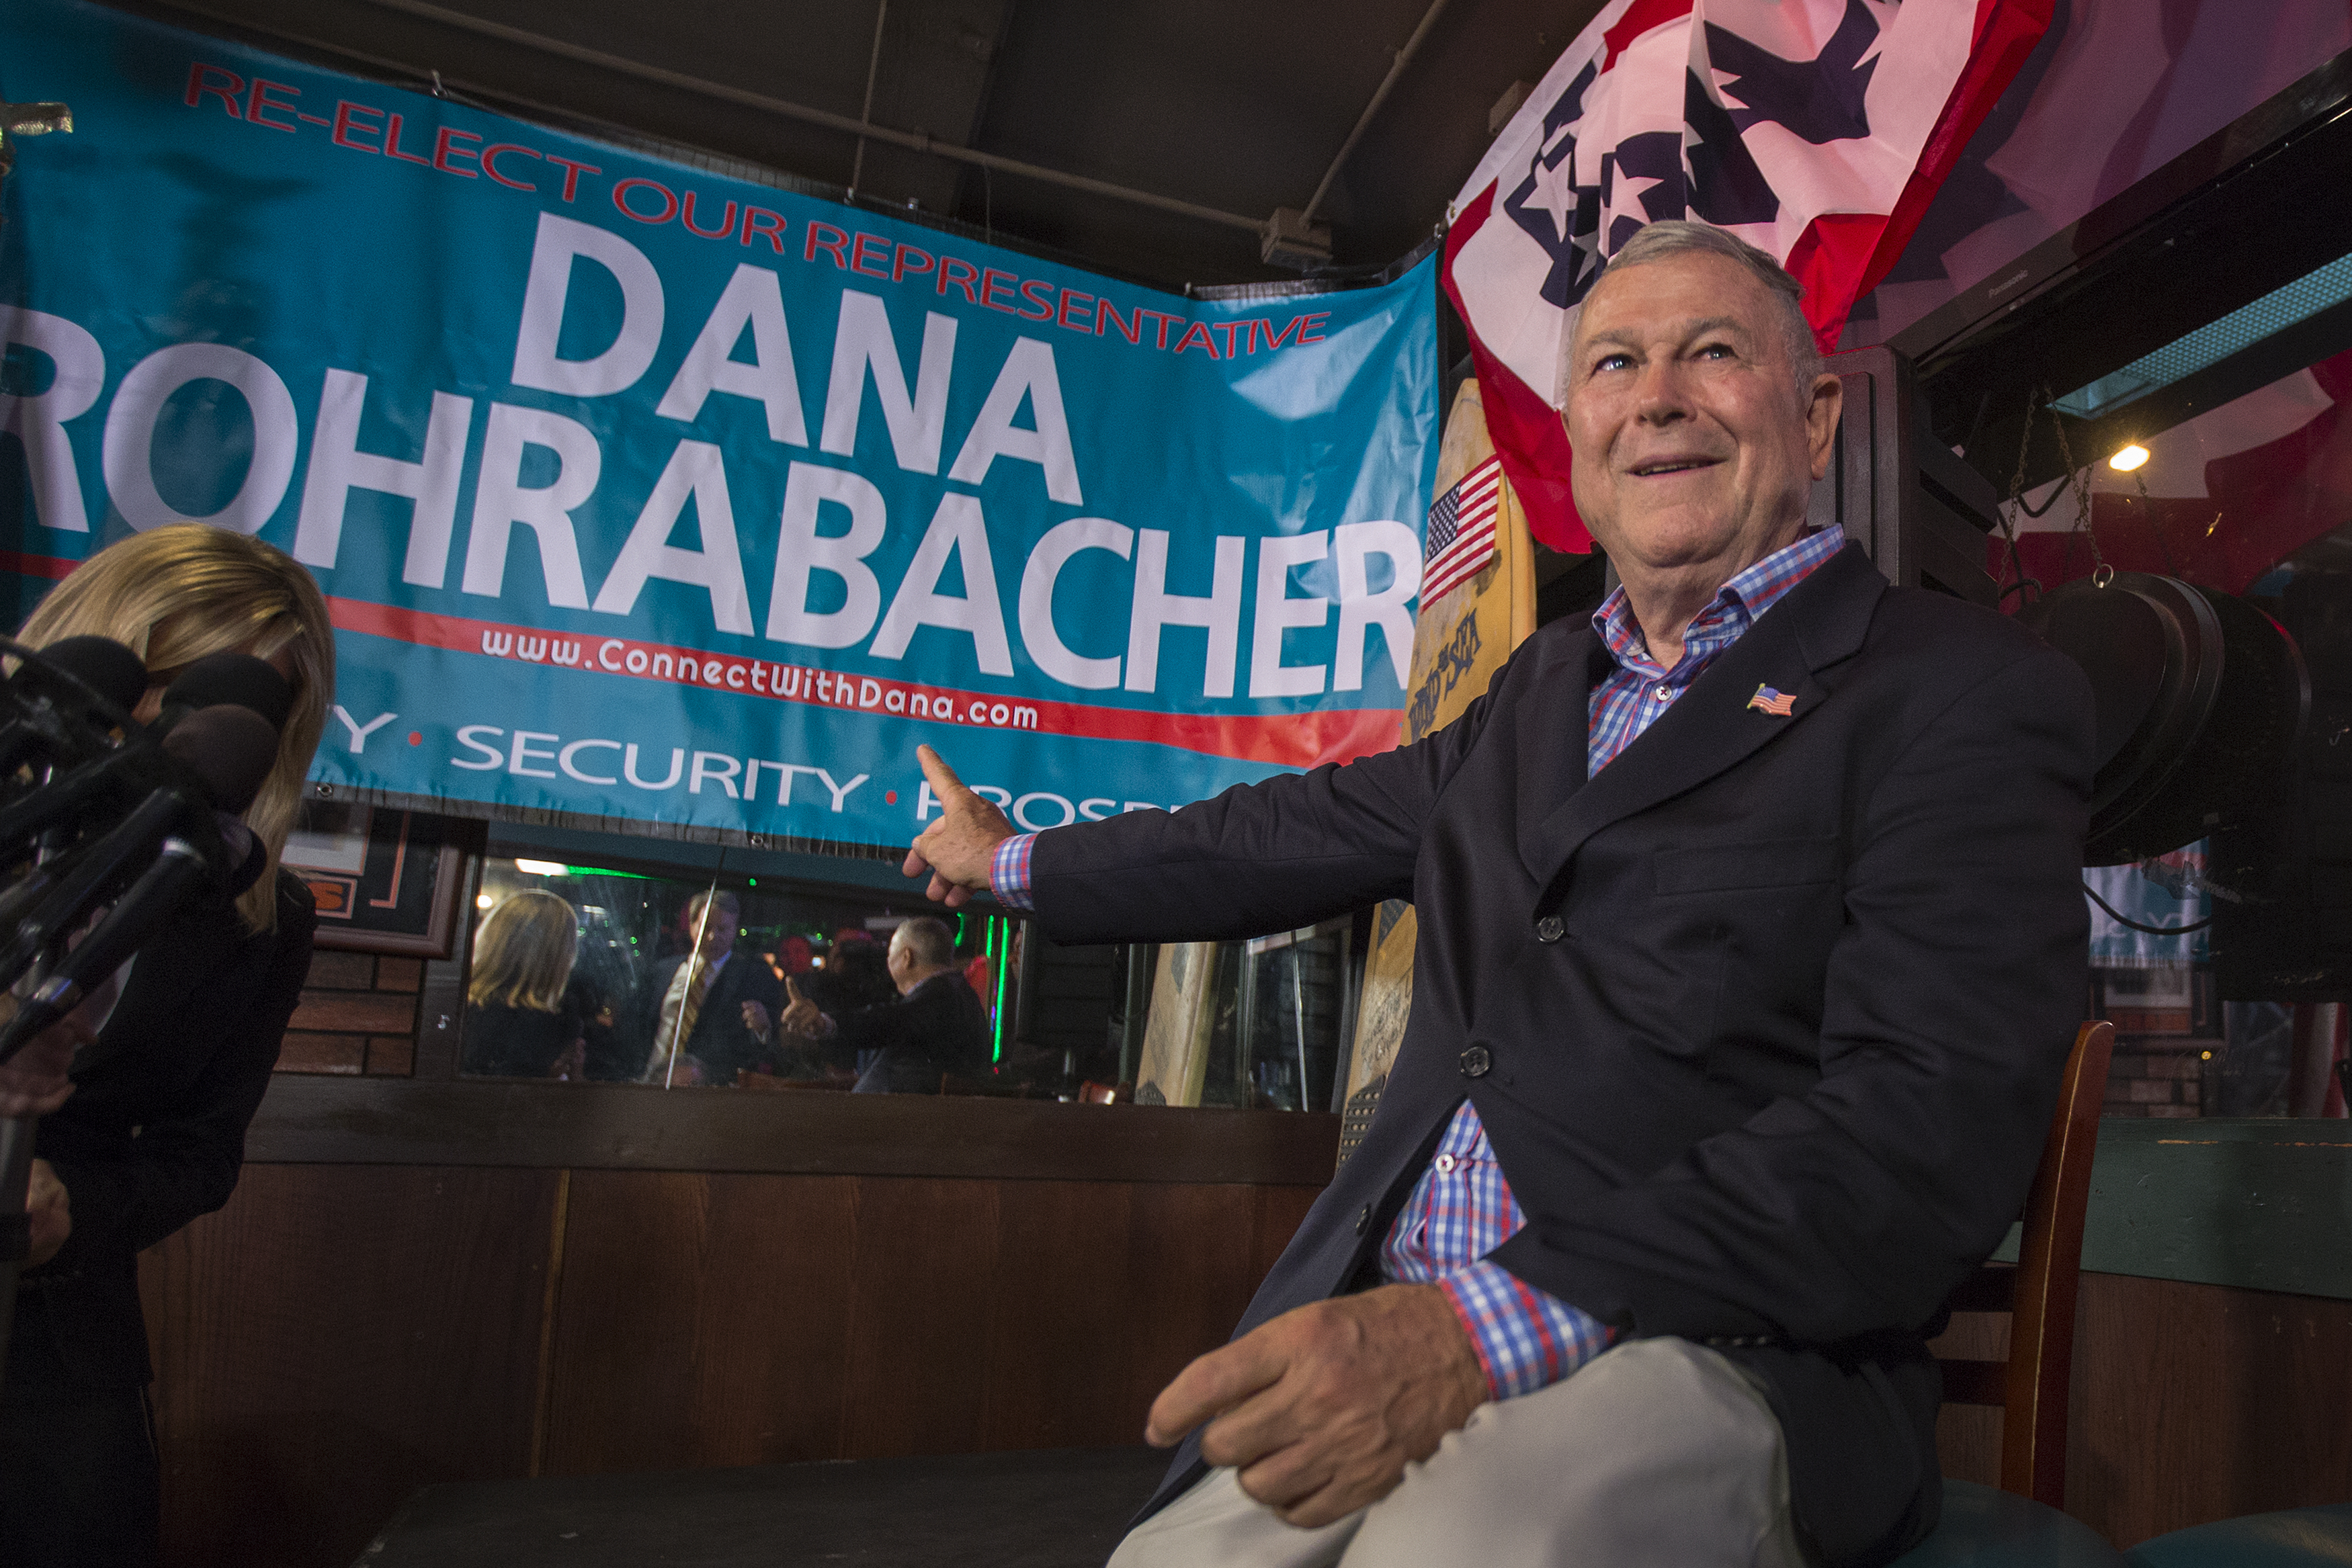 Longtime Rep. Dana Rohrabacher (R-Costa Mesa) talks to reporters on Election Night on November 6, 2018 in Costa Mesa, California. (David McNew/Getty Images)